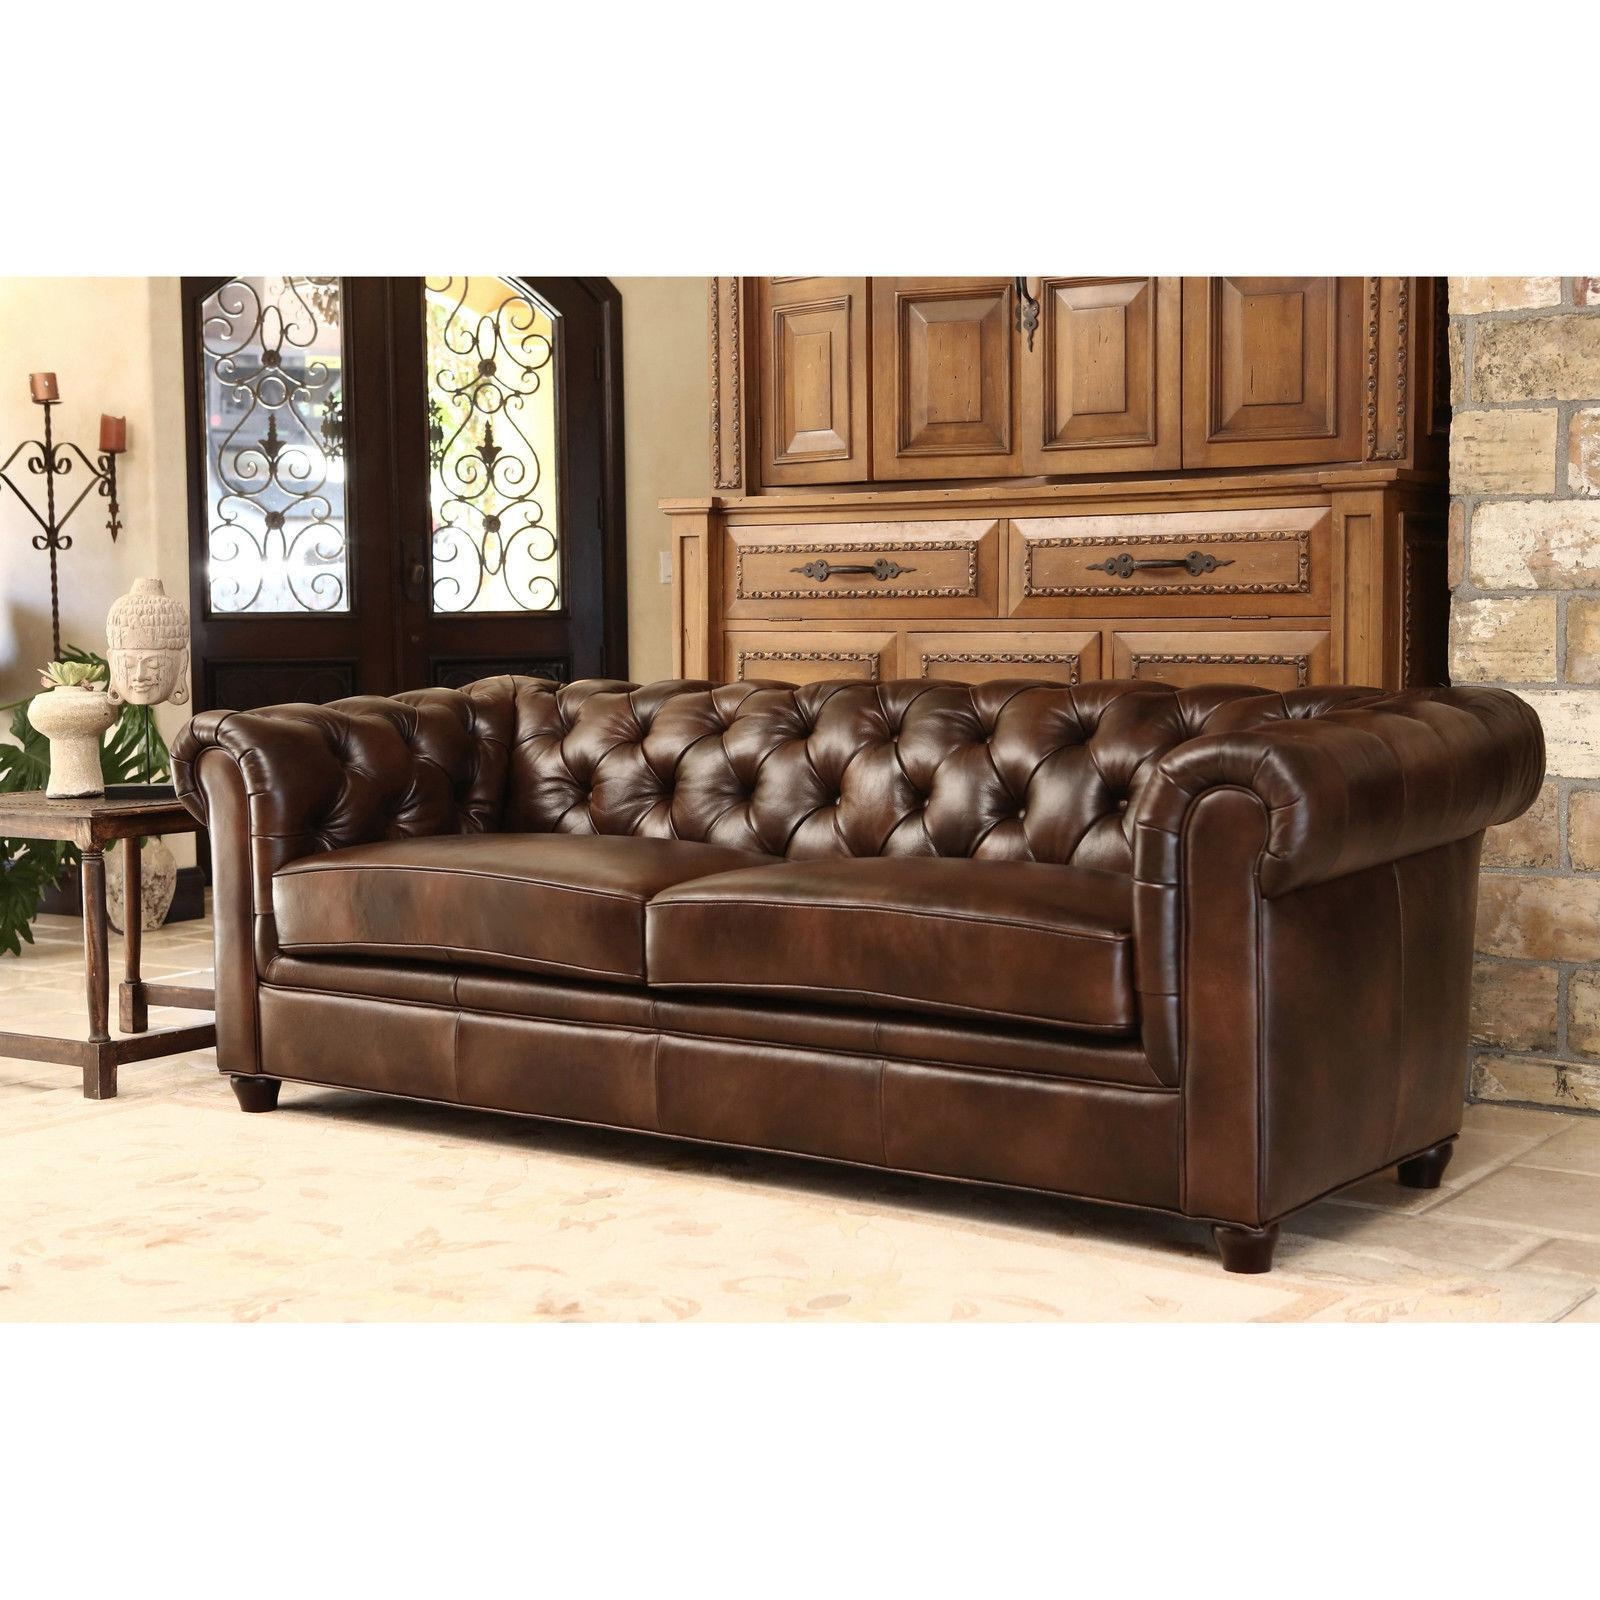 Oversized Brown Leather Tufted Sofa Button Tufted Design Solid Inside Brown Tufted Sofas (Image 13 of 20)